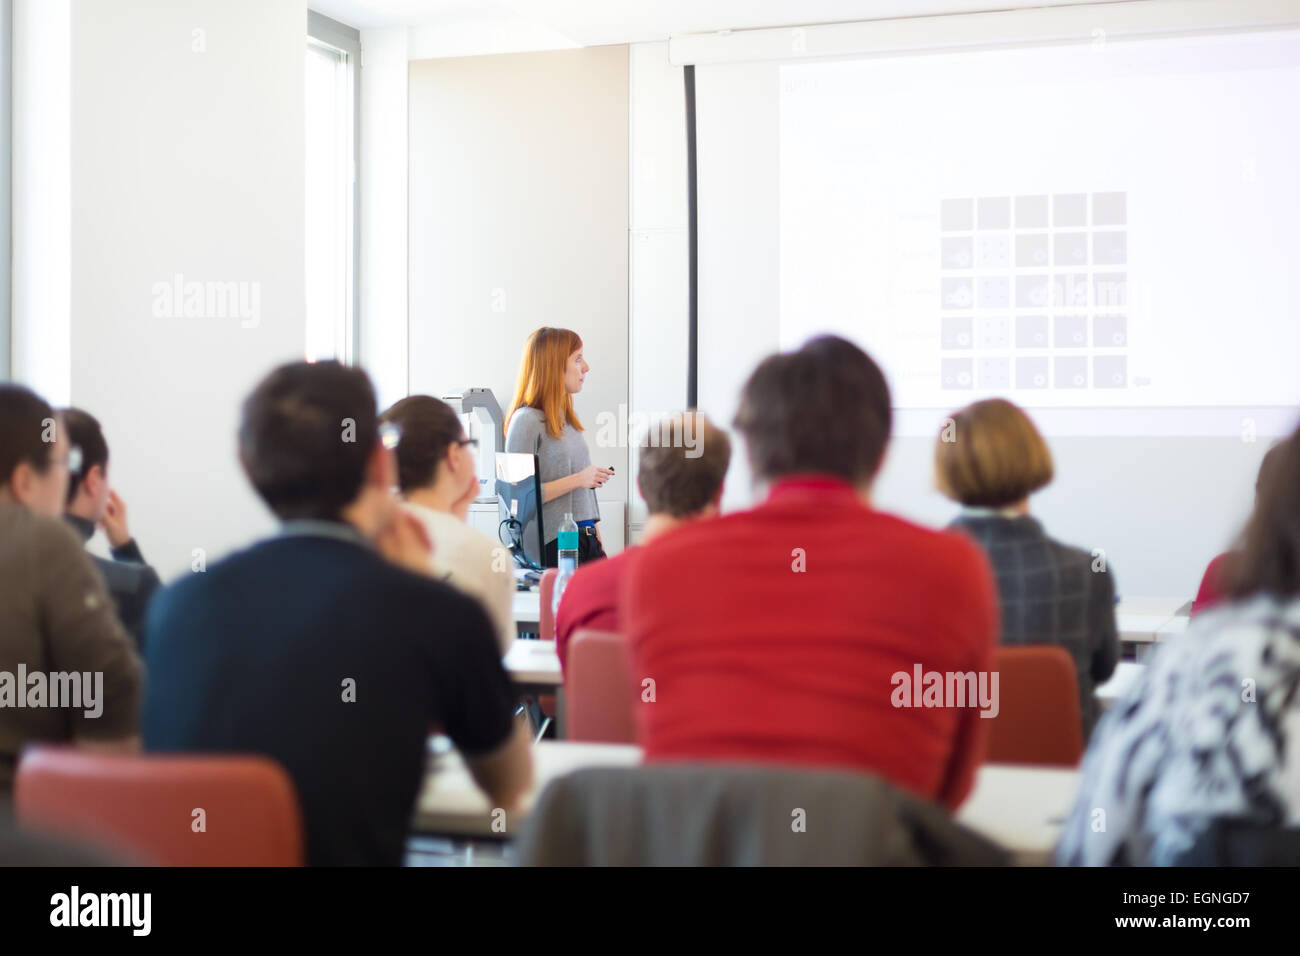 Lecture at university. - Stock Image